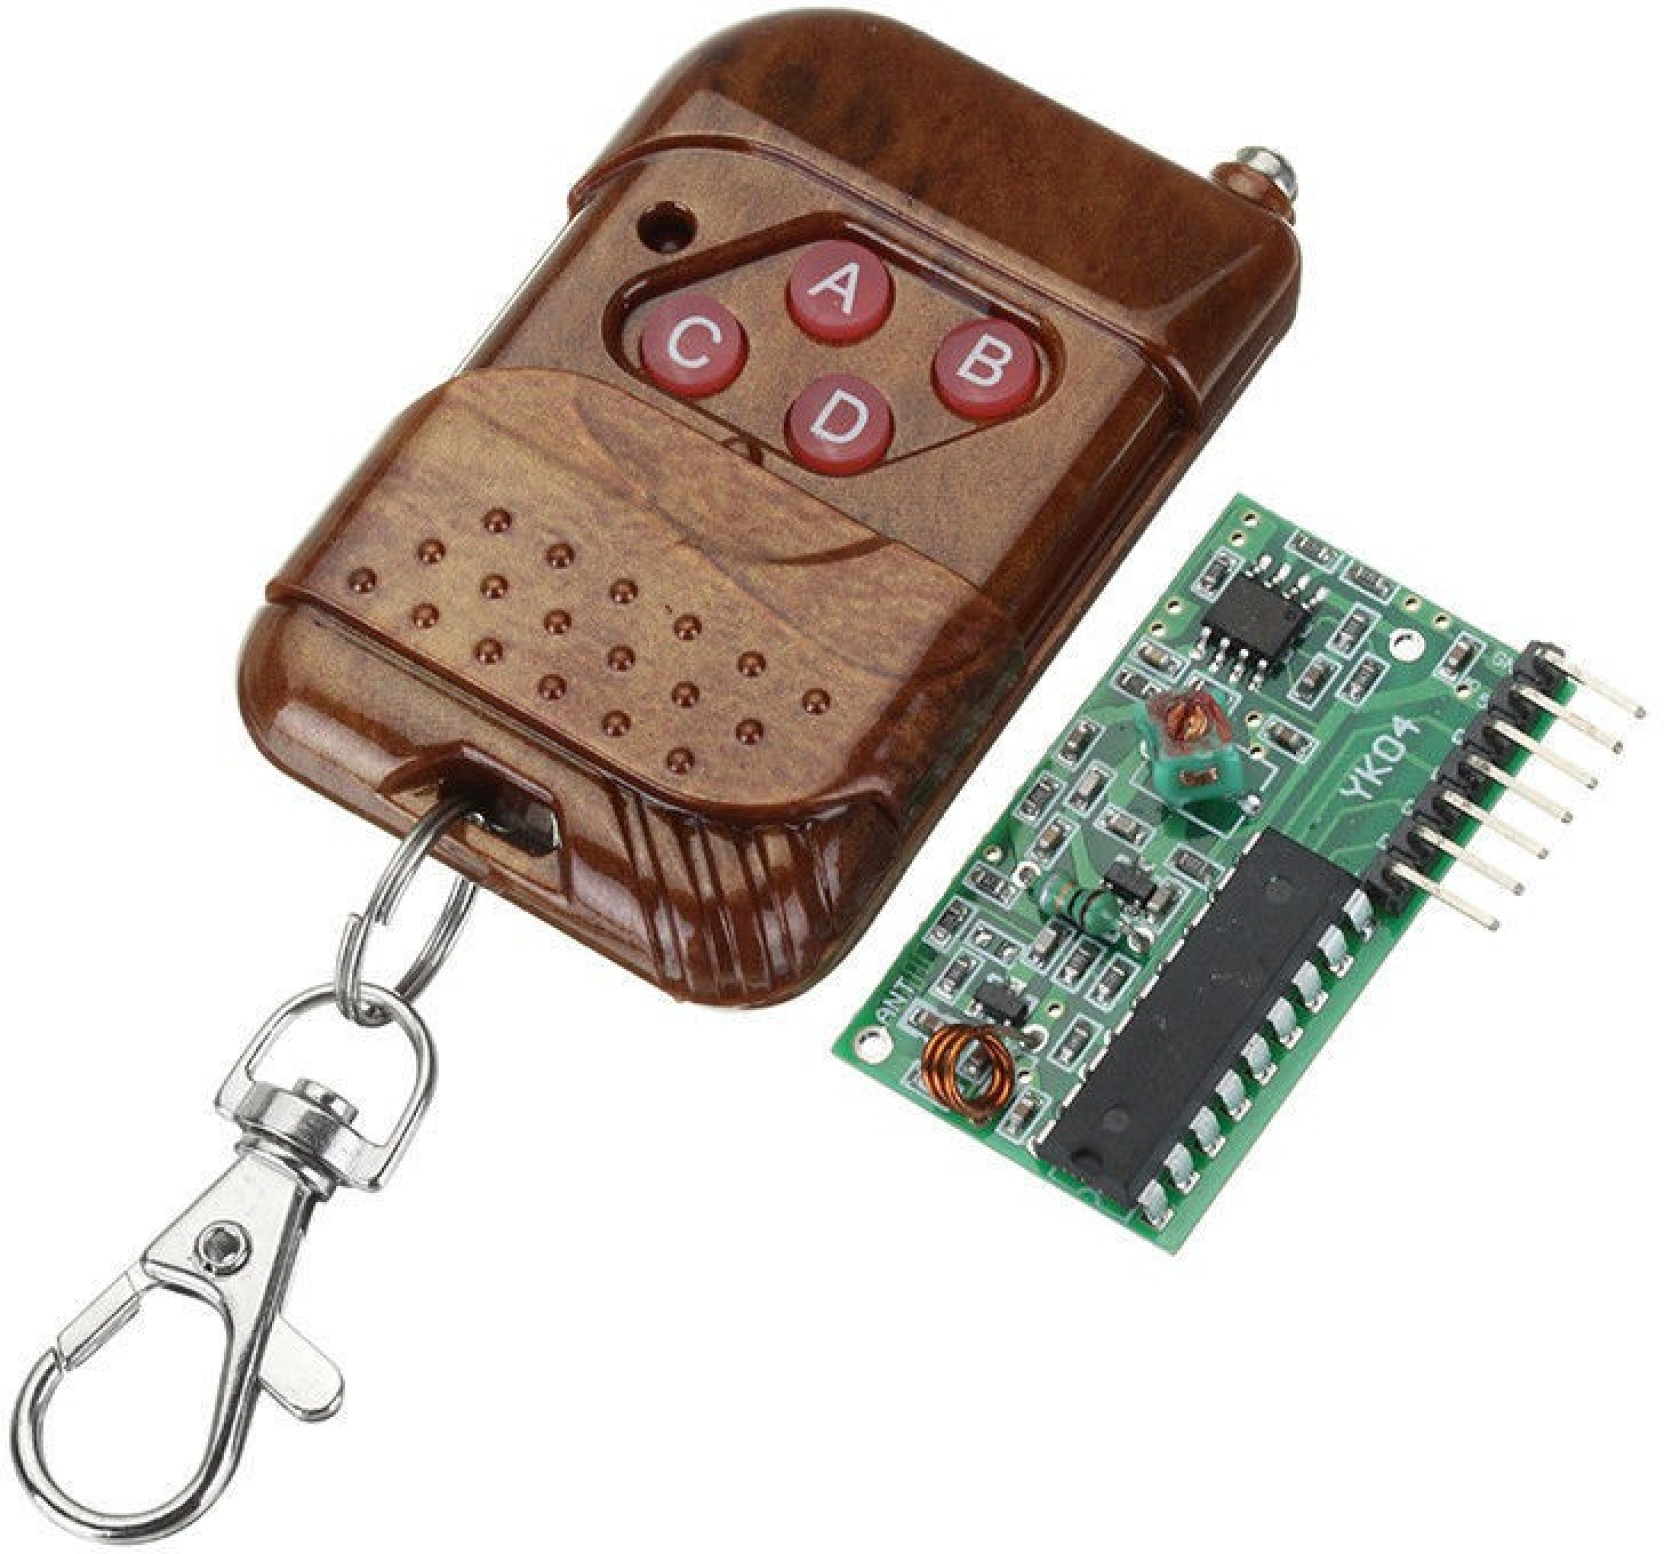 Technologybazar Ic 2262 2272 4channel 315mhz Key Wireless Remote Radio Control Using Dtmf Receiver Transceiver Kits Module Educational Electronic Home